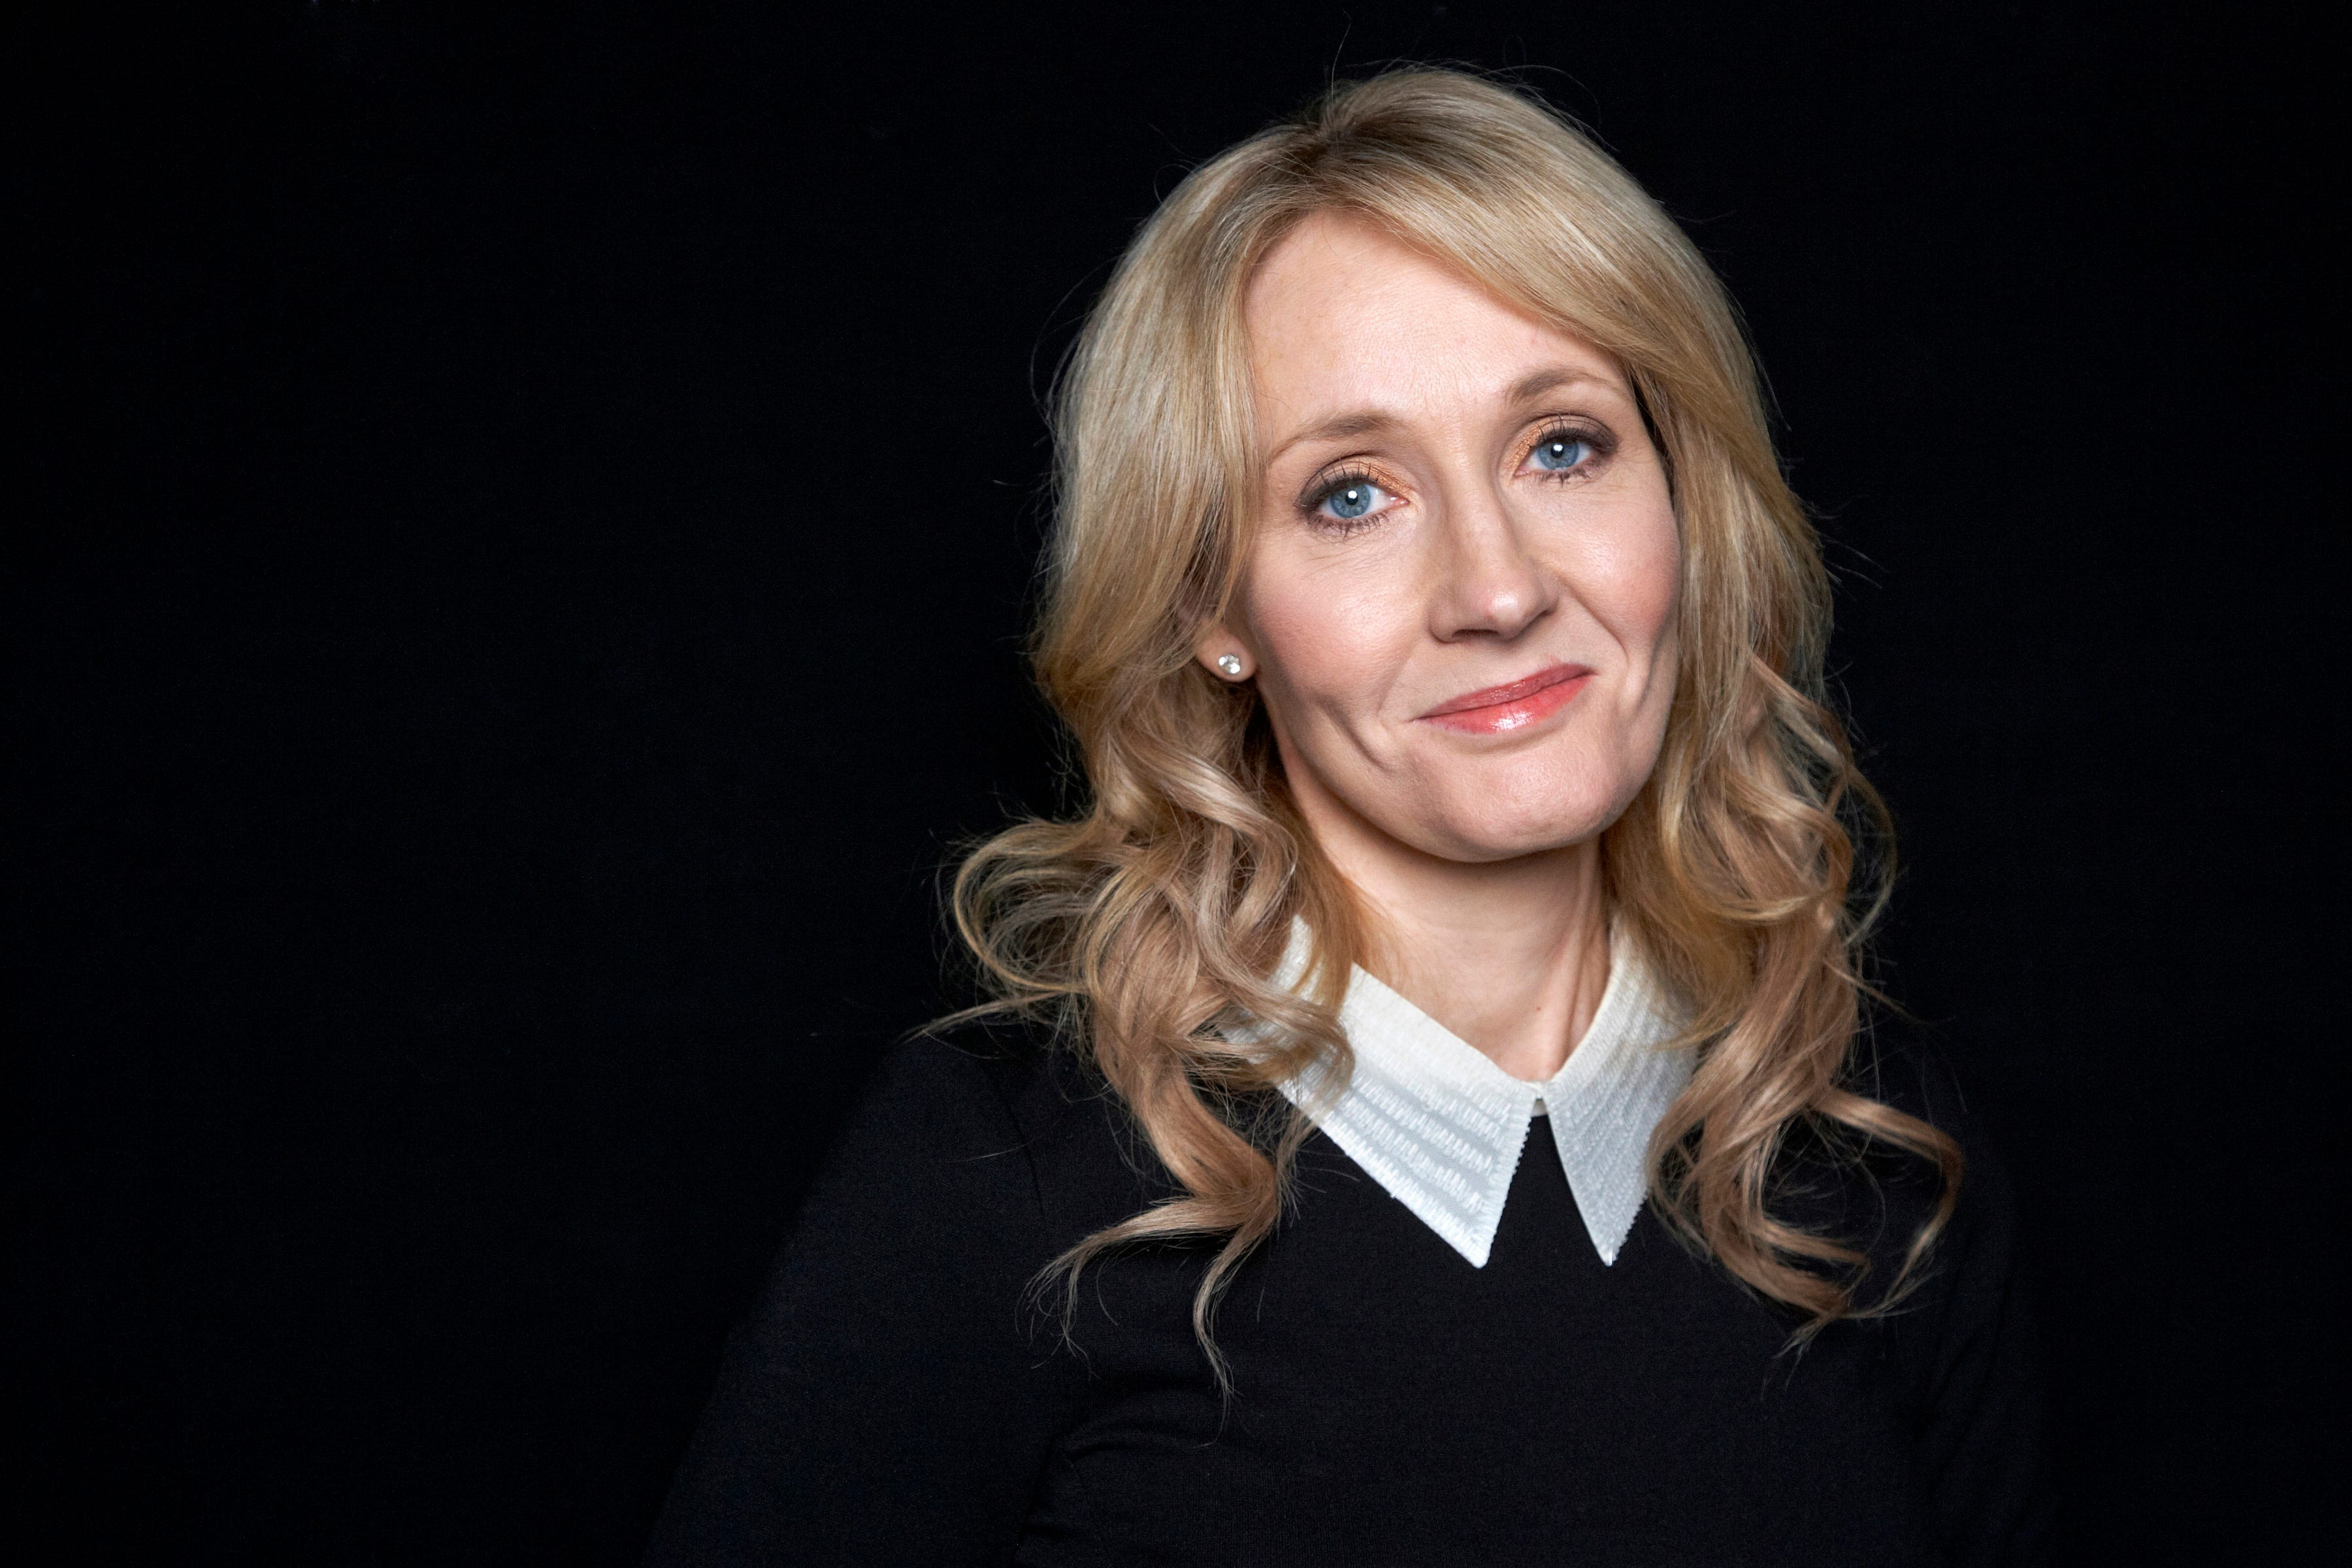 Harry Potter's Birth Makes JK Rowling Cry naked (77 image)